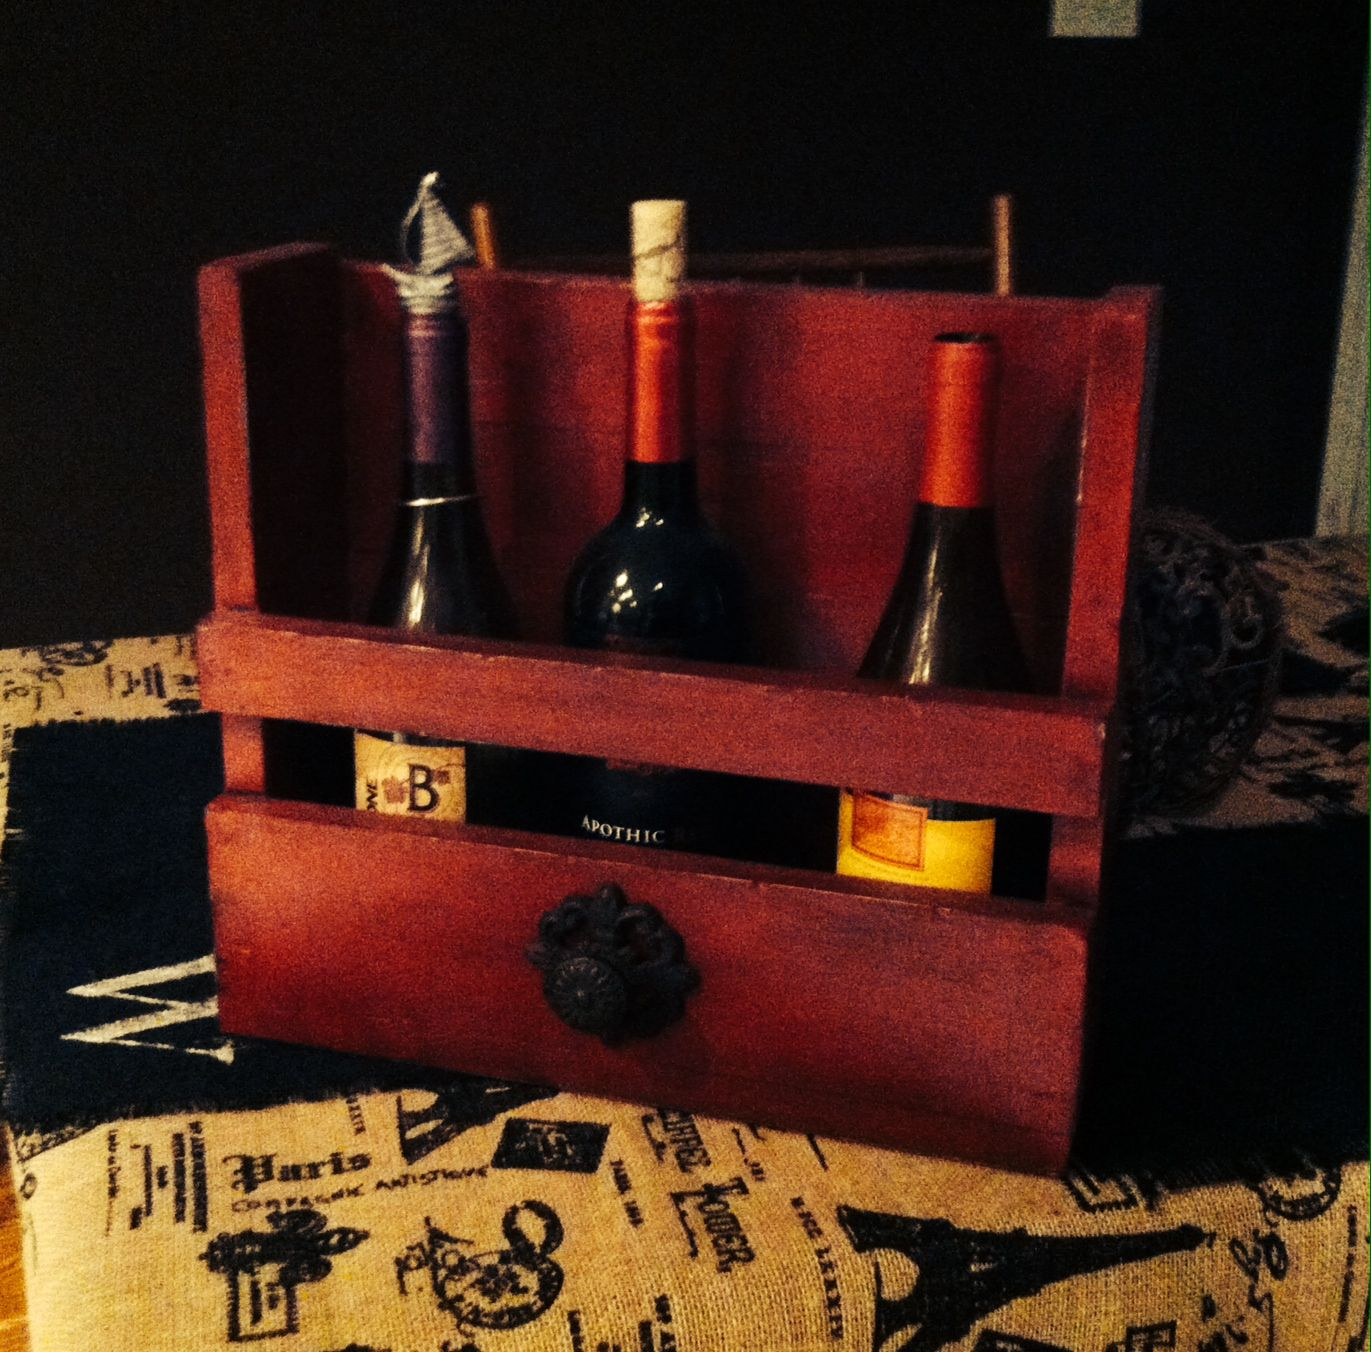 Homemade Wine Rack With Images Homemade Wine Rack Wine Rack Homemade Wine